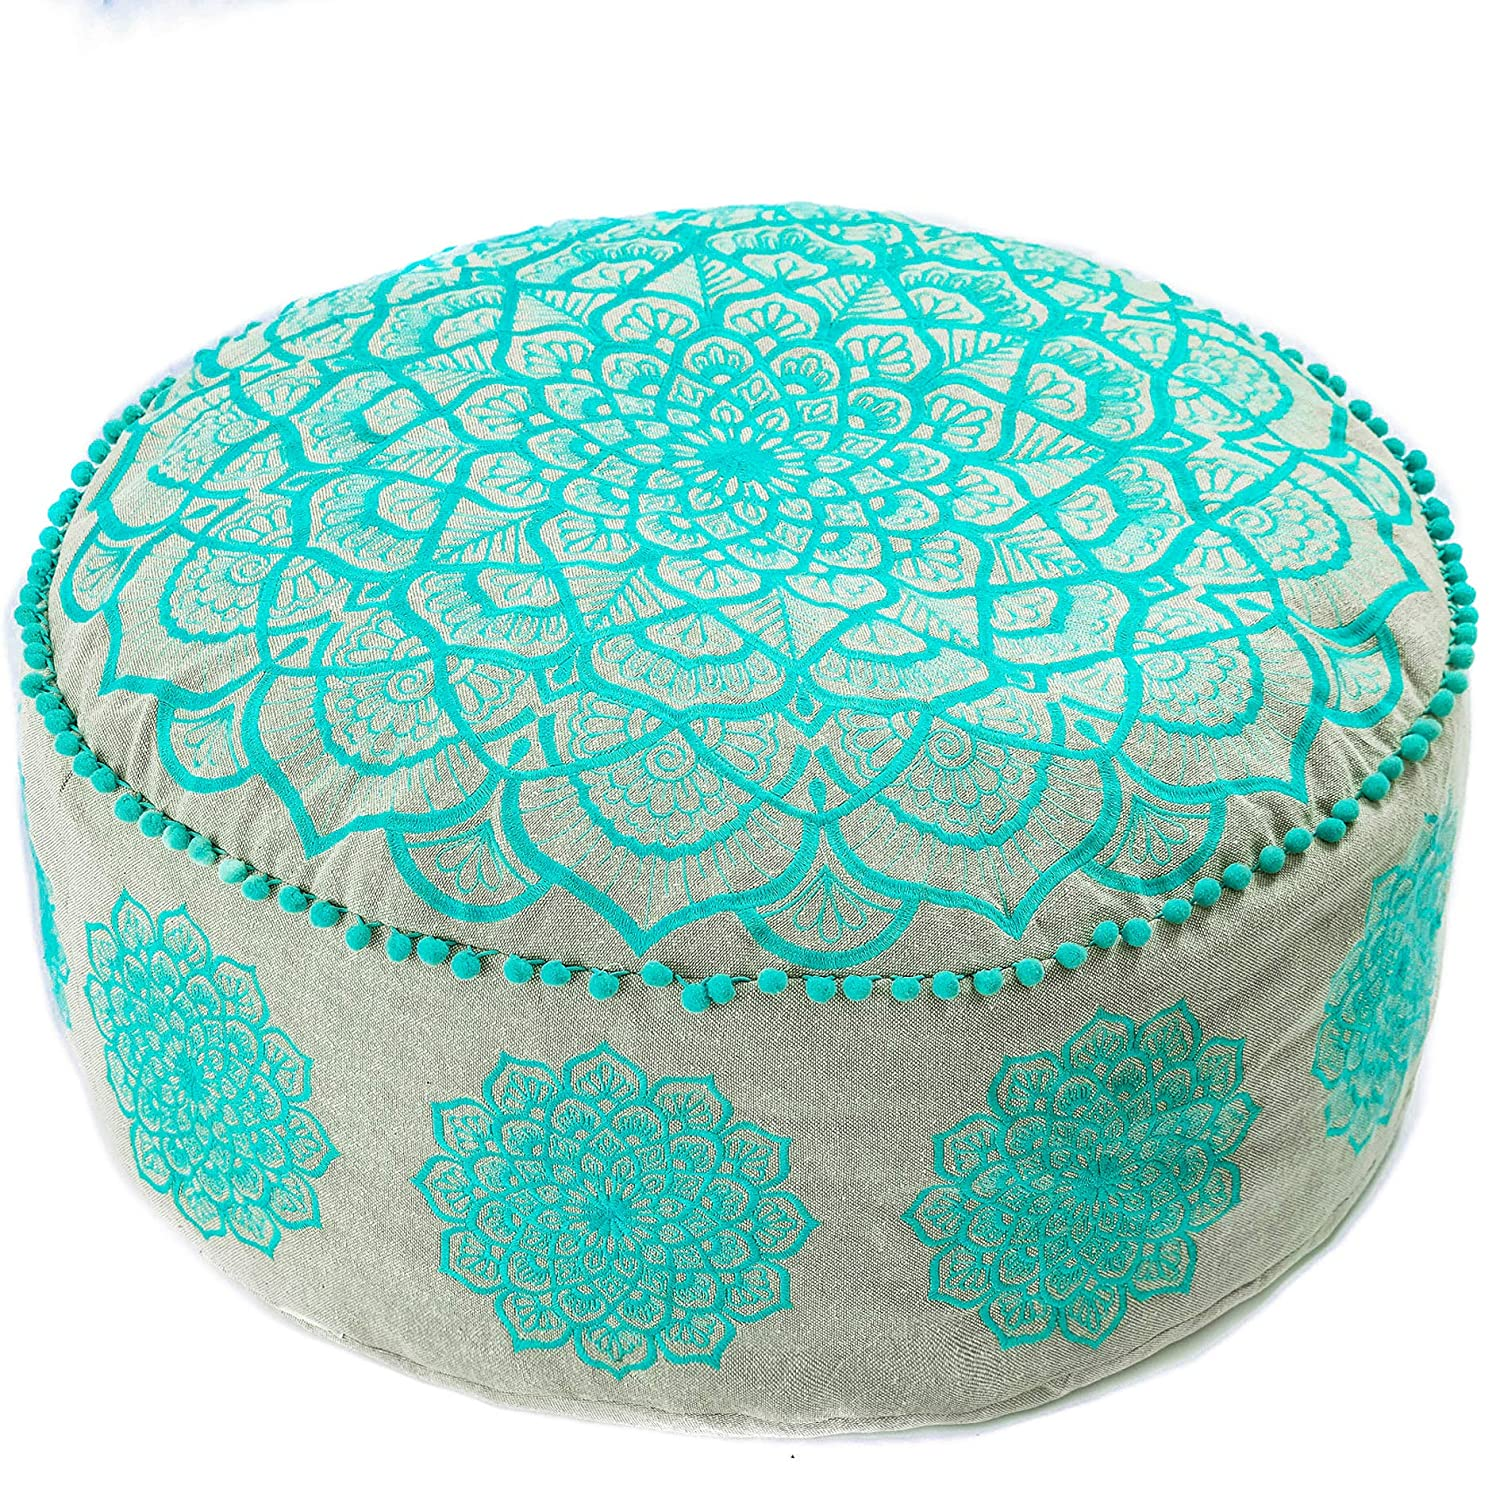 Bohemian Pouf Ottoman –STUFFED - Luxury, Artisan Room Décor Pouffe for Meditation, Yoga, and Boho Chic Seating Area Stool Floor Pillow – Accent Your Living Room, Bedroom, More – Handmade in India by Mandala Life ART PoufStaffedPBlue